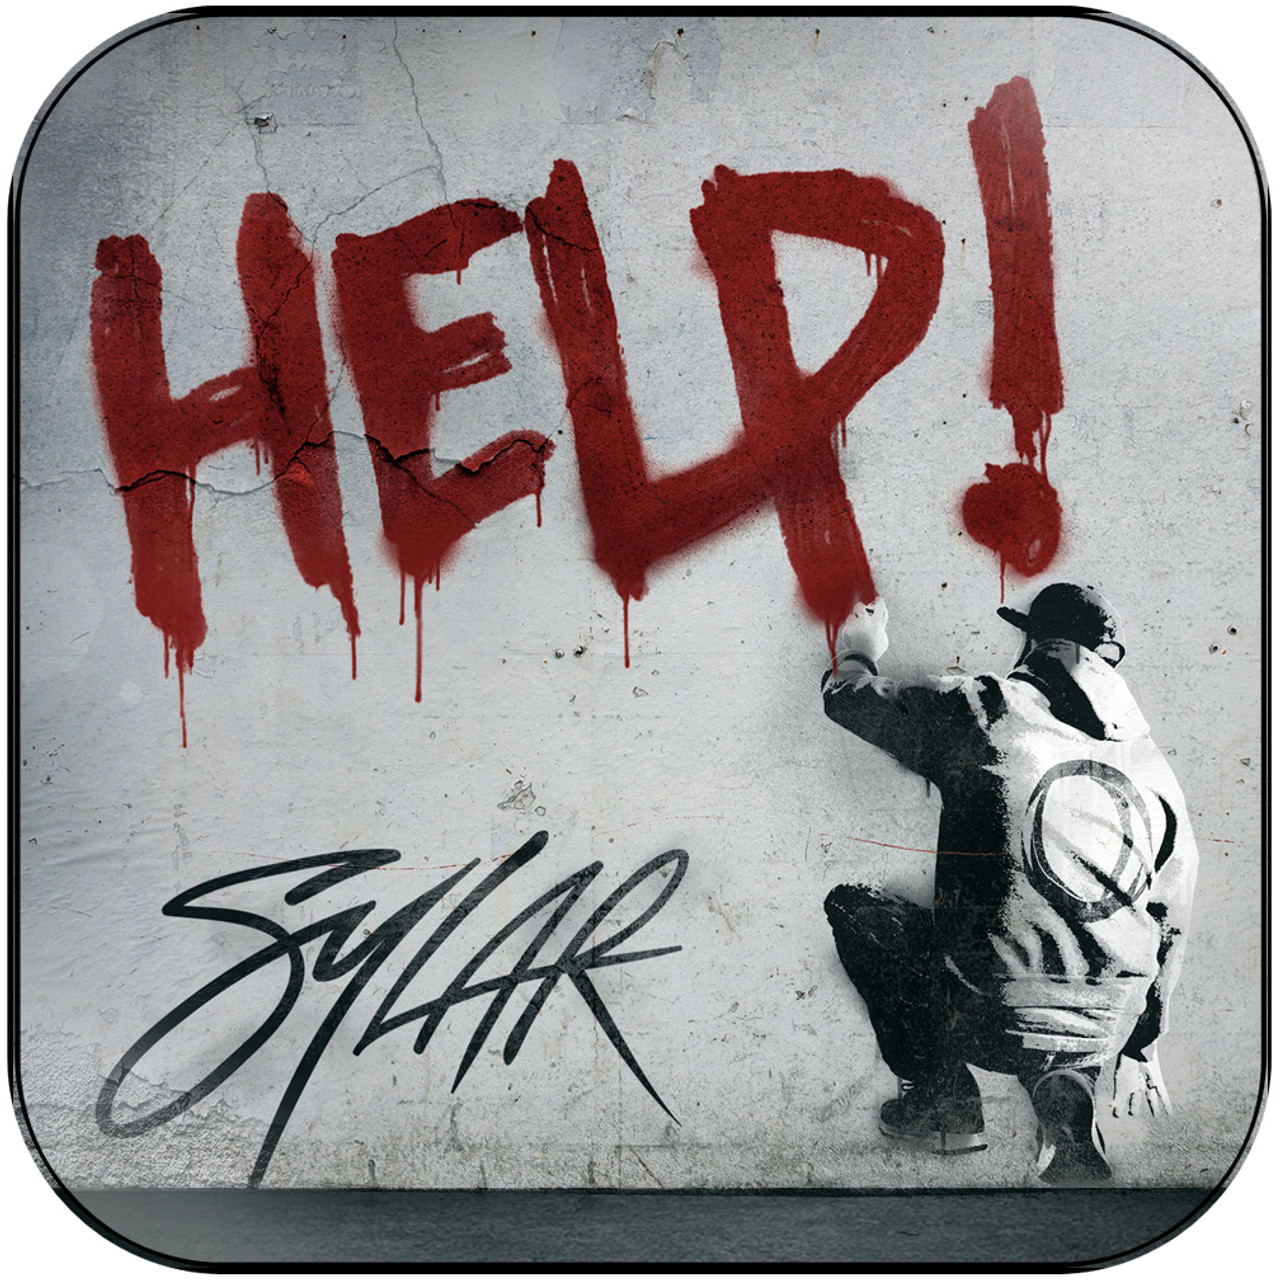 Sylar - Help Album Cover Sticker